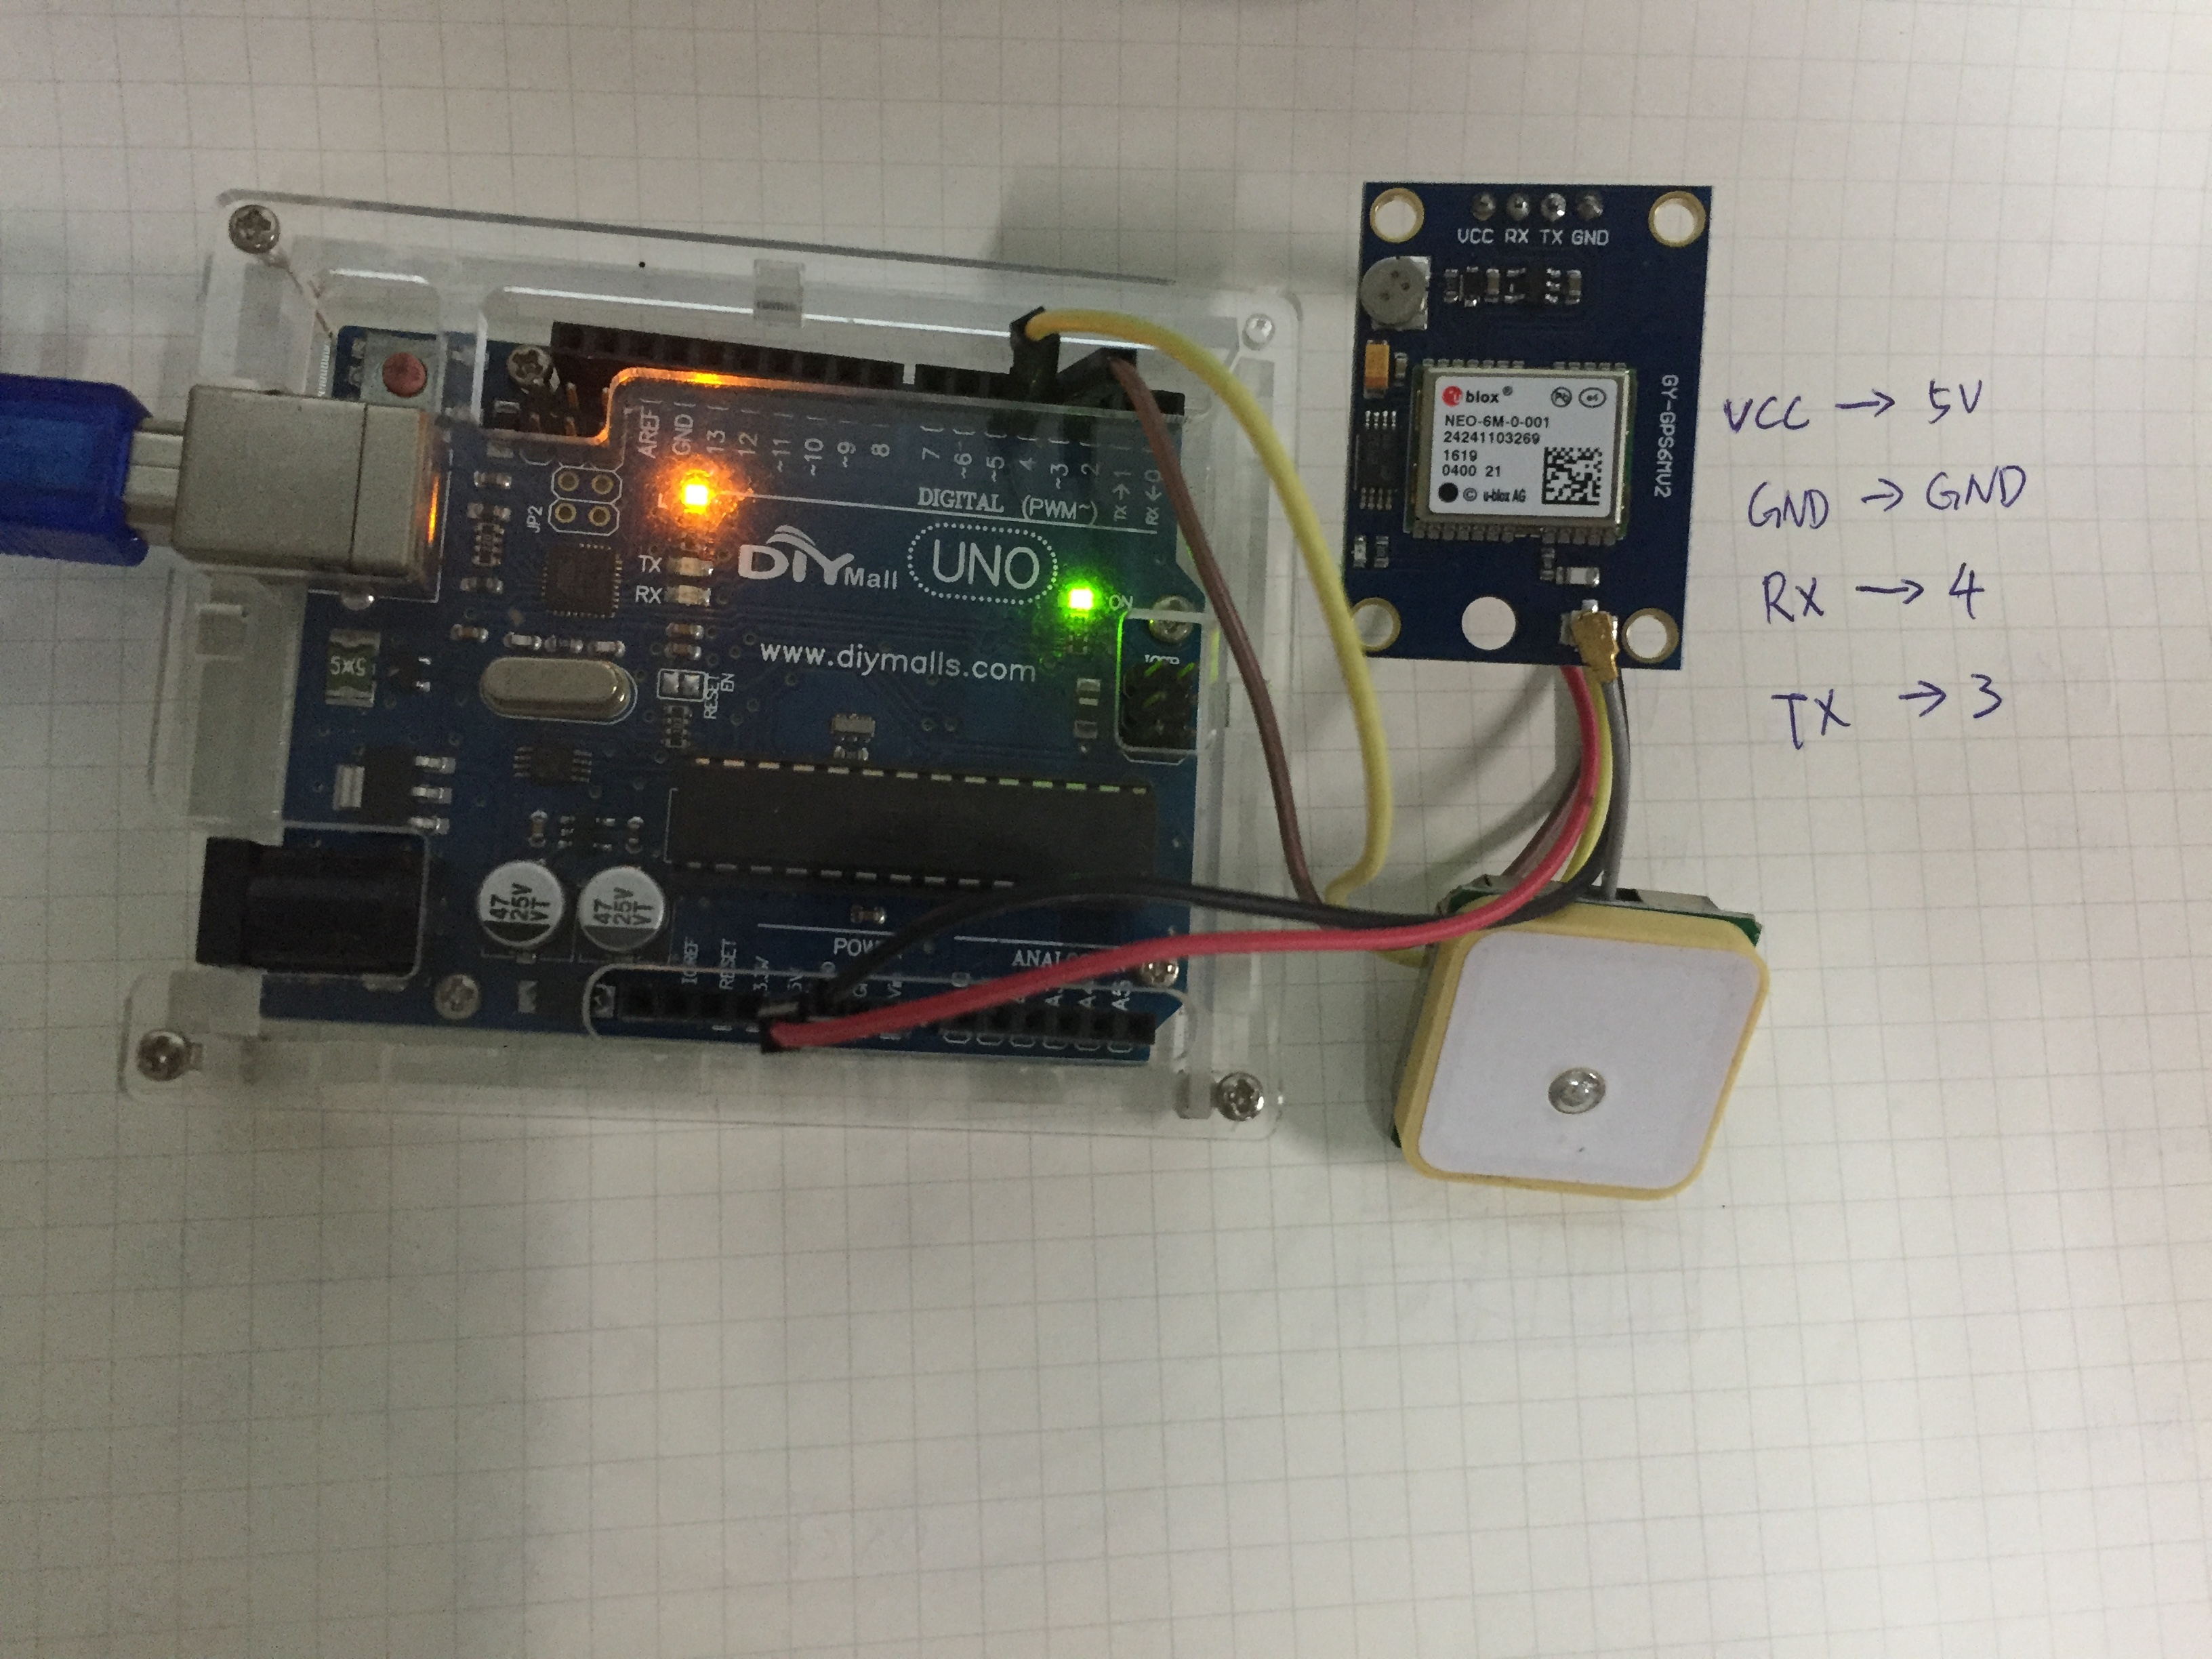 A best GPS module for Arduino allows you to calculate the exact coordination, time, and date of your location and the destination you want to reach.